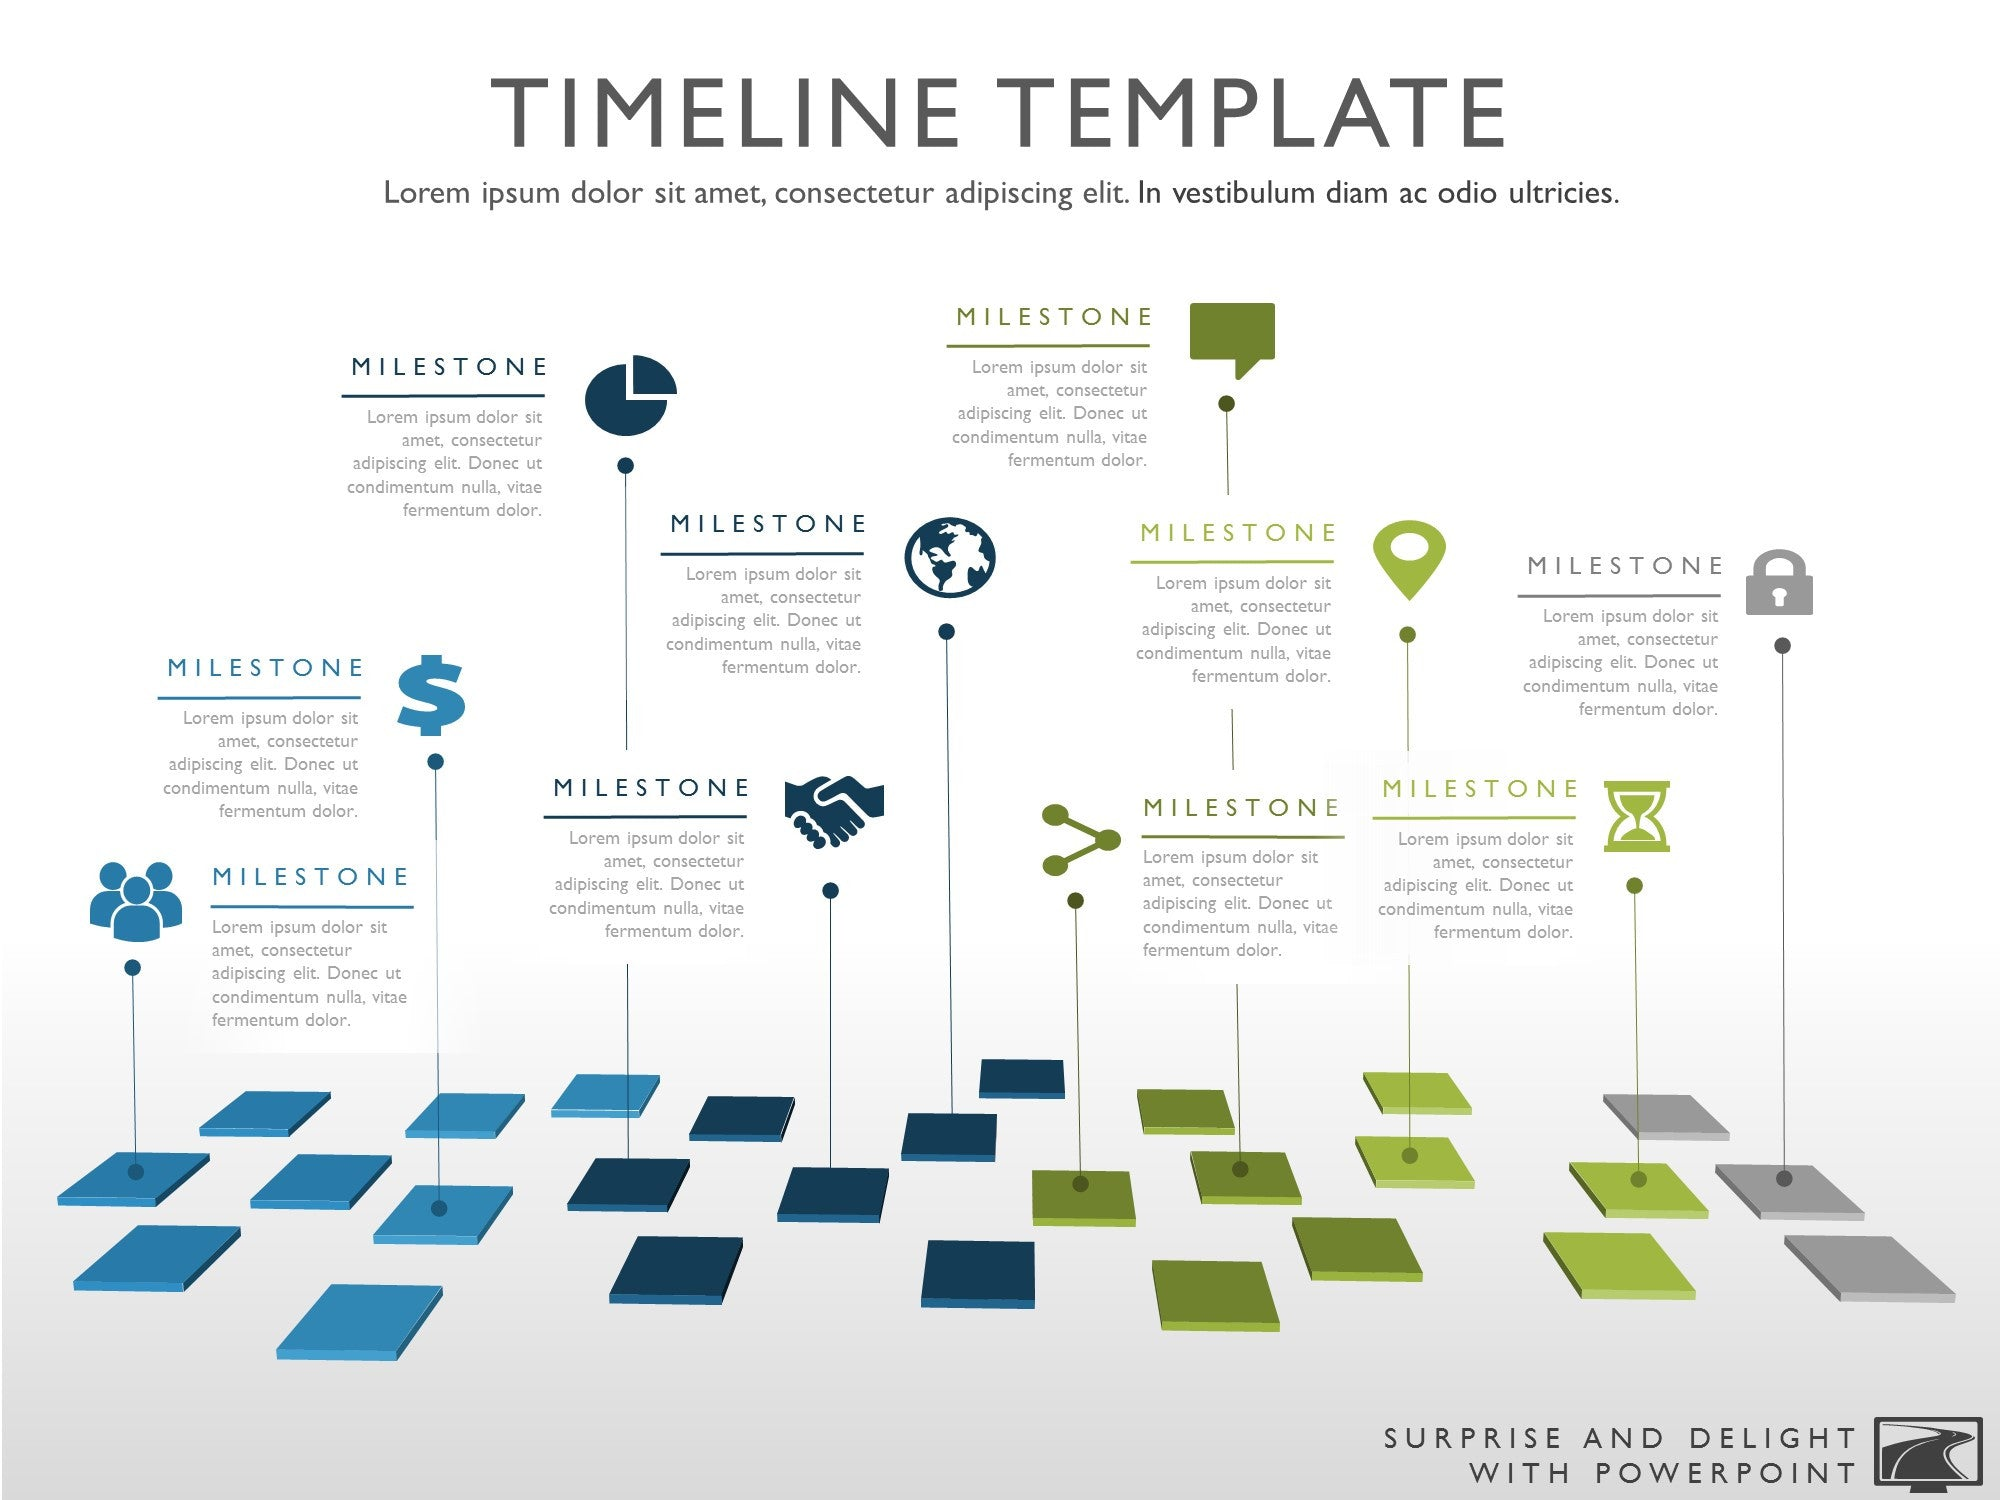 Product Roadmap Timeline Monthly Plan From January To August Free - Roadmap timeline template ppt